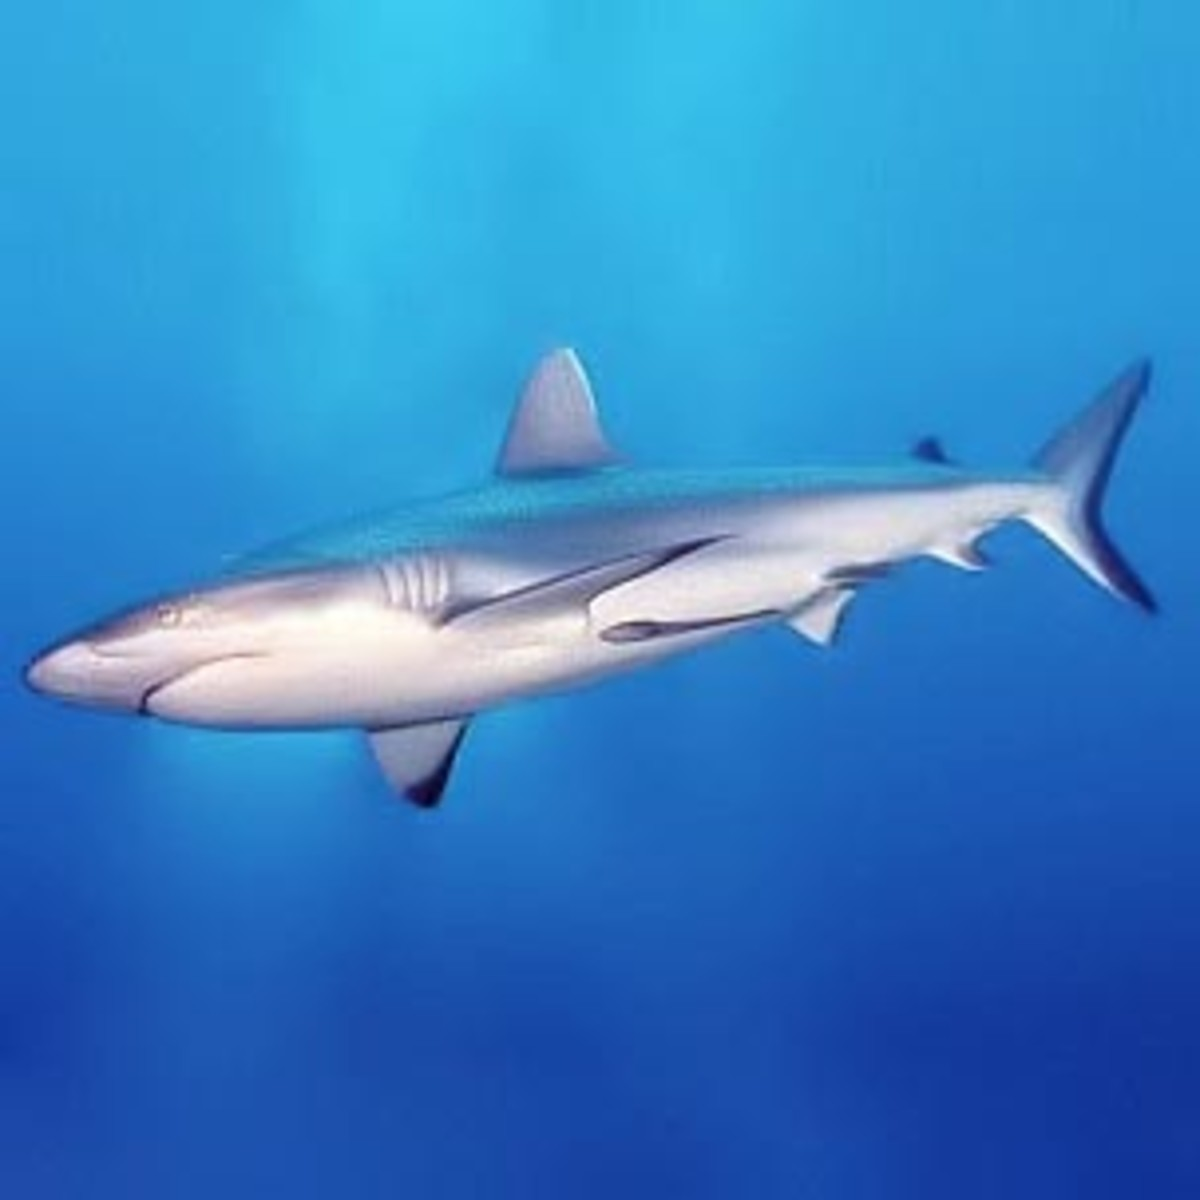 Sharks can only swim in a forward direction. When hunting, they swim slowly to avoid detection, then dart forward when they get close enough to their prey.